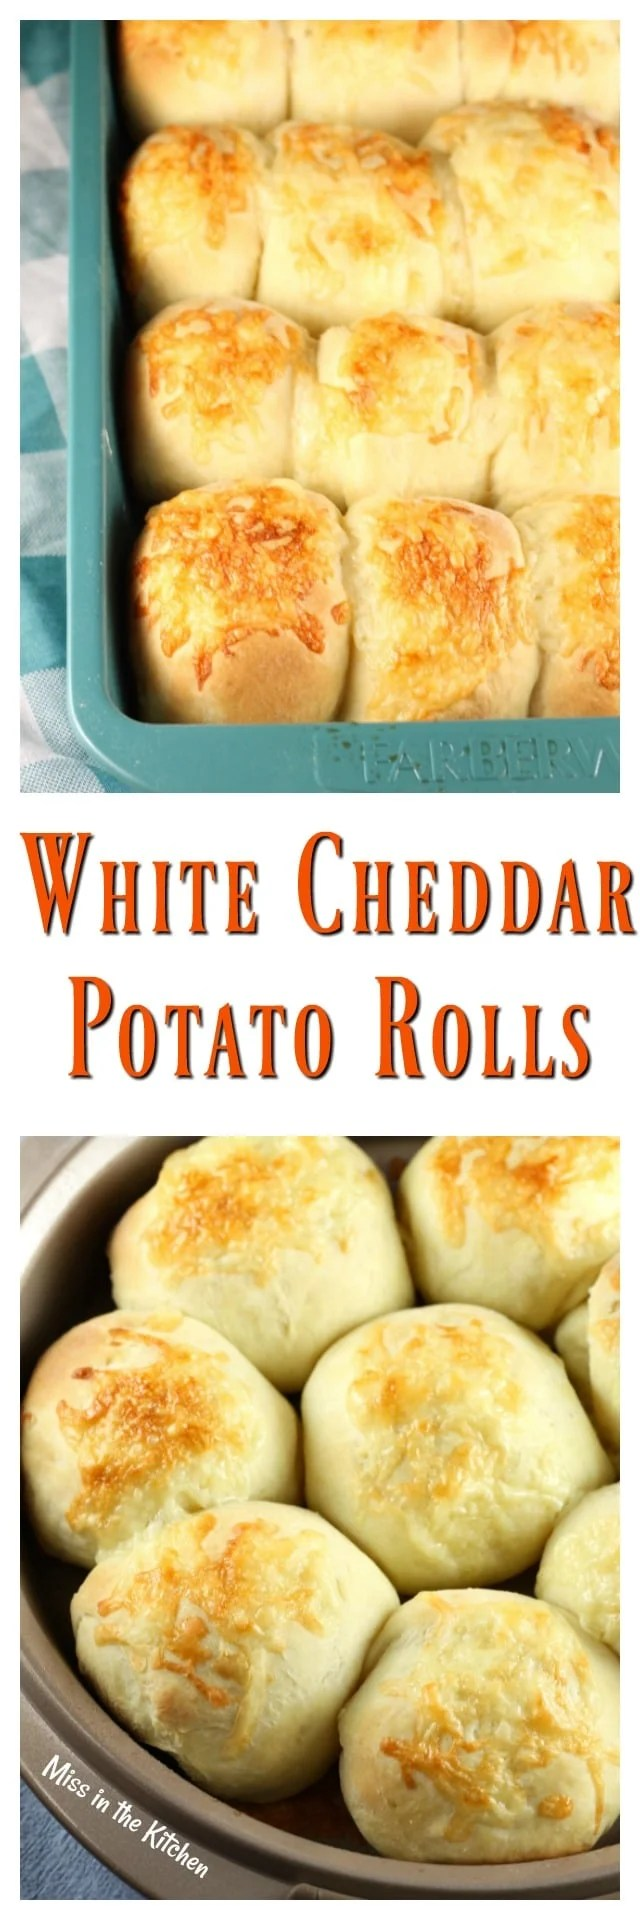 White Cheddar Potato Roll Recipe perfect for the holiday dinners ~ Recipe from MissintheKitchen.com #ad @RedStarYeast